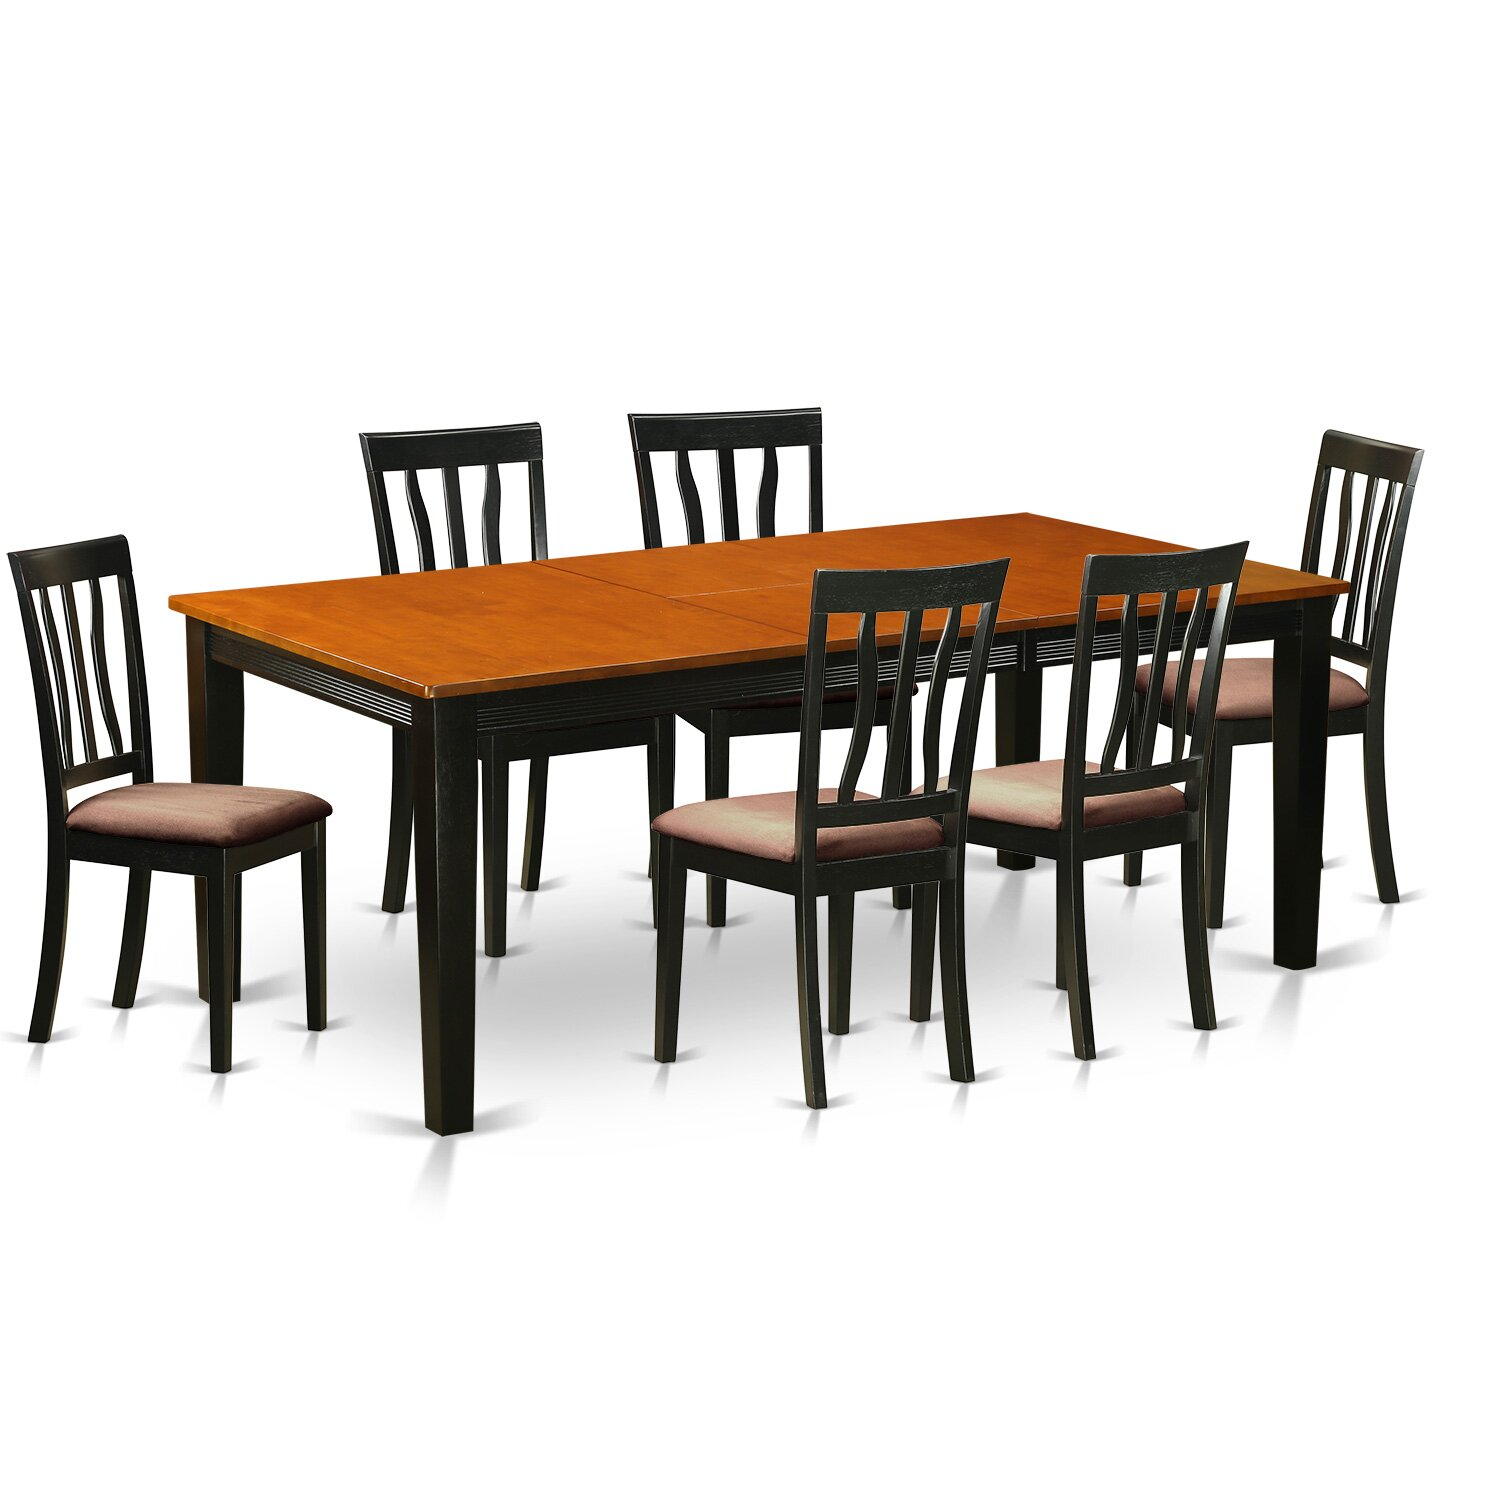 52 Kitchen Tables And Chairs Sets 7 Pc Dining Room: Wooden Importers Quincy 7 Piece Dining Set